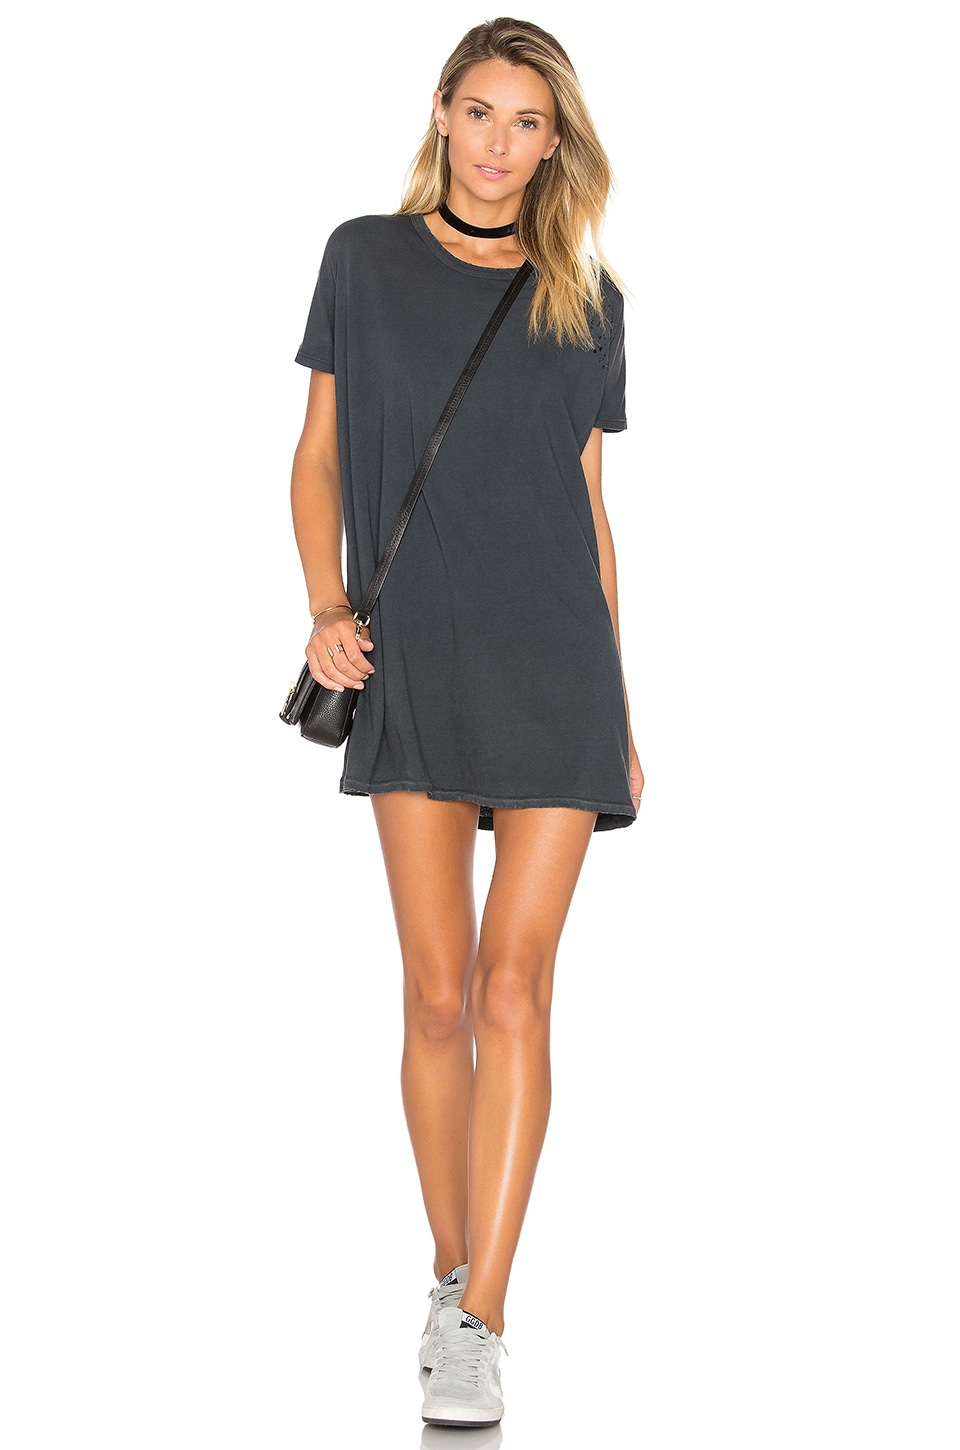 SUNDRY Distressed Tunic Tee Dress in Sun Faded Black